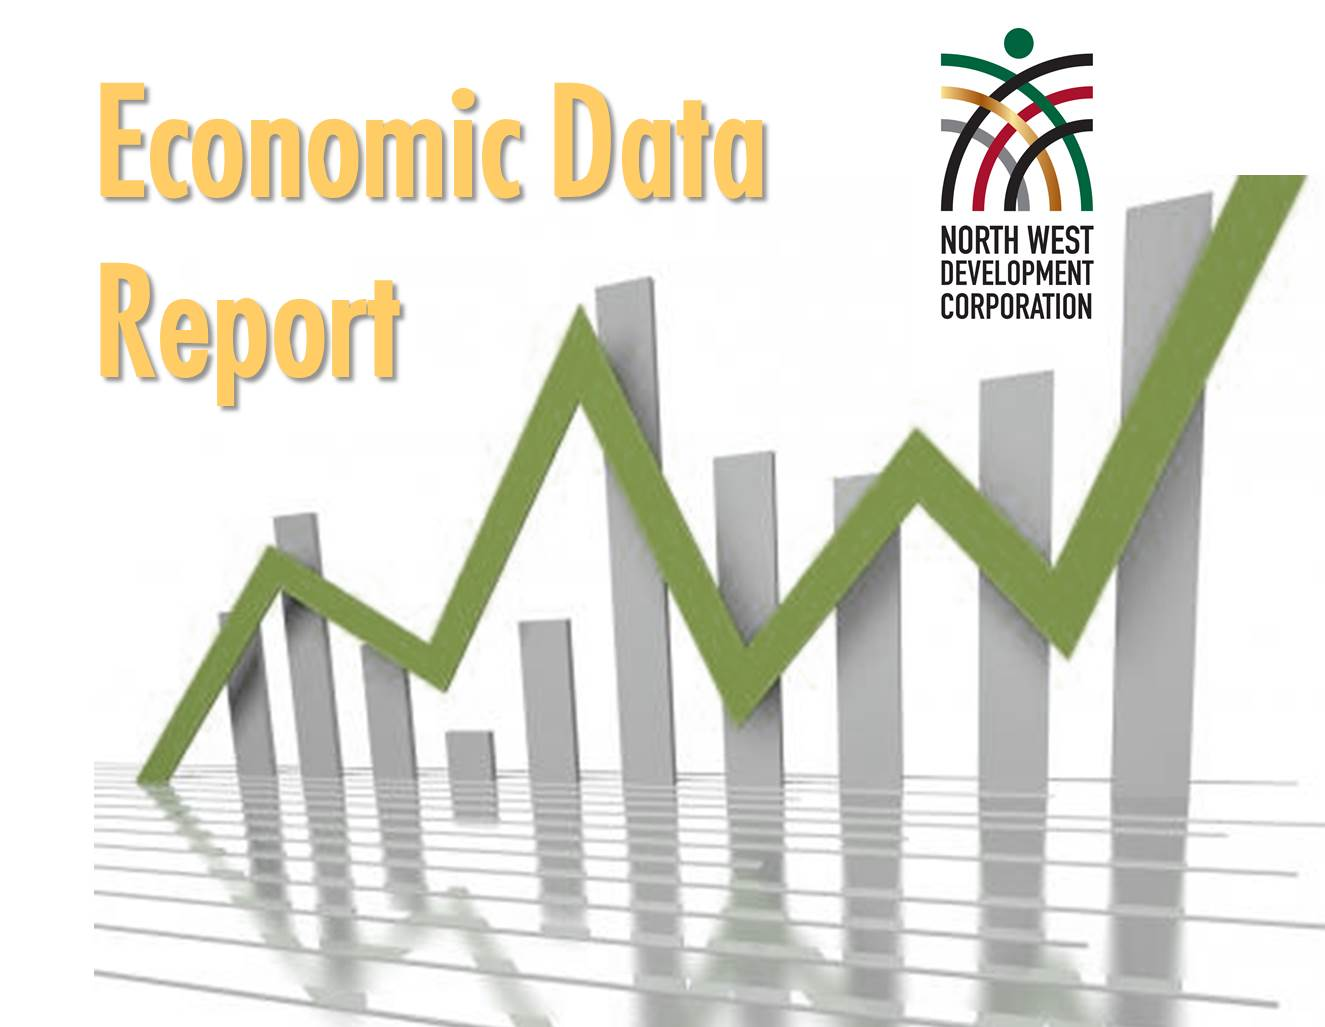 Economic data report image